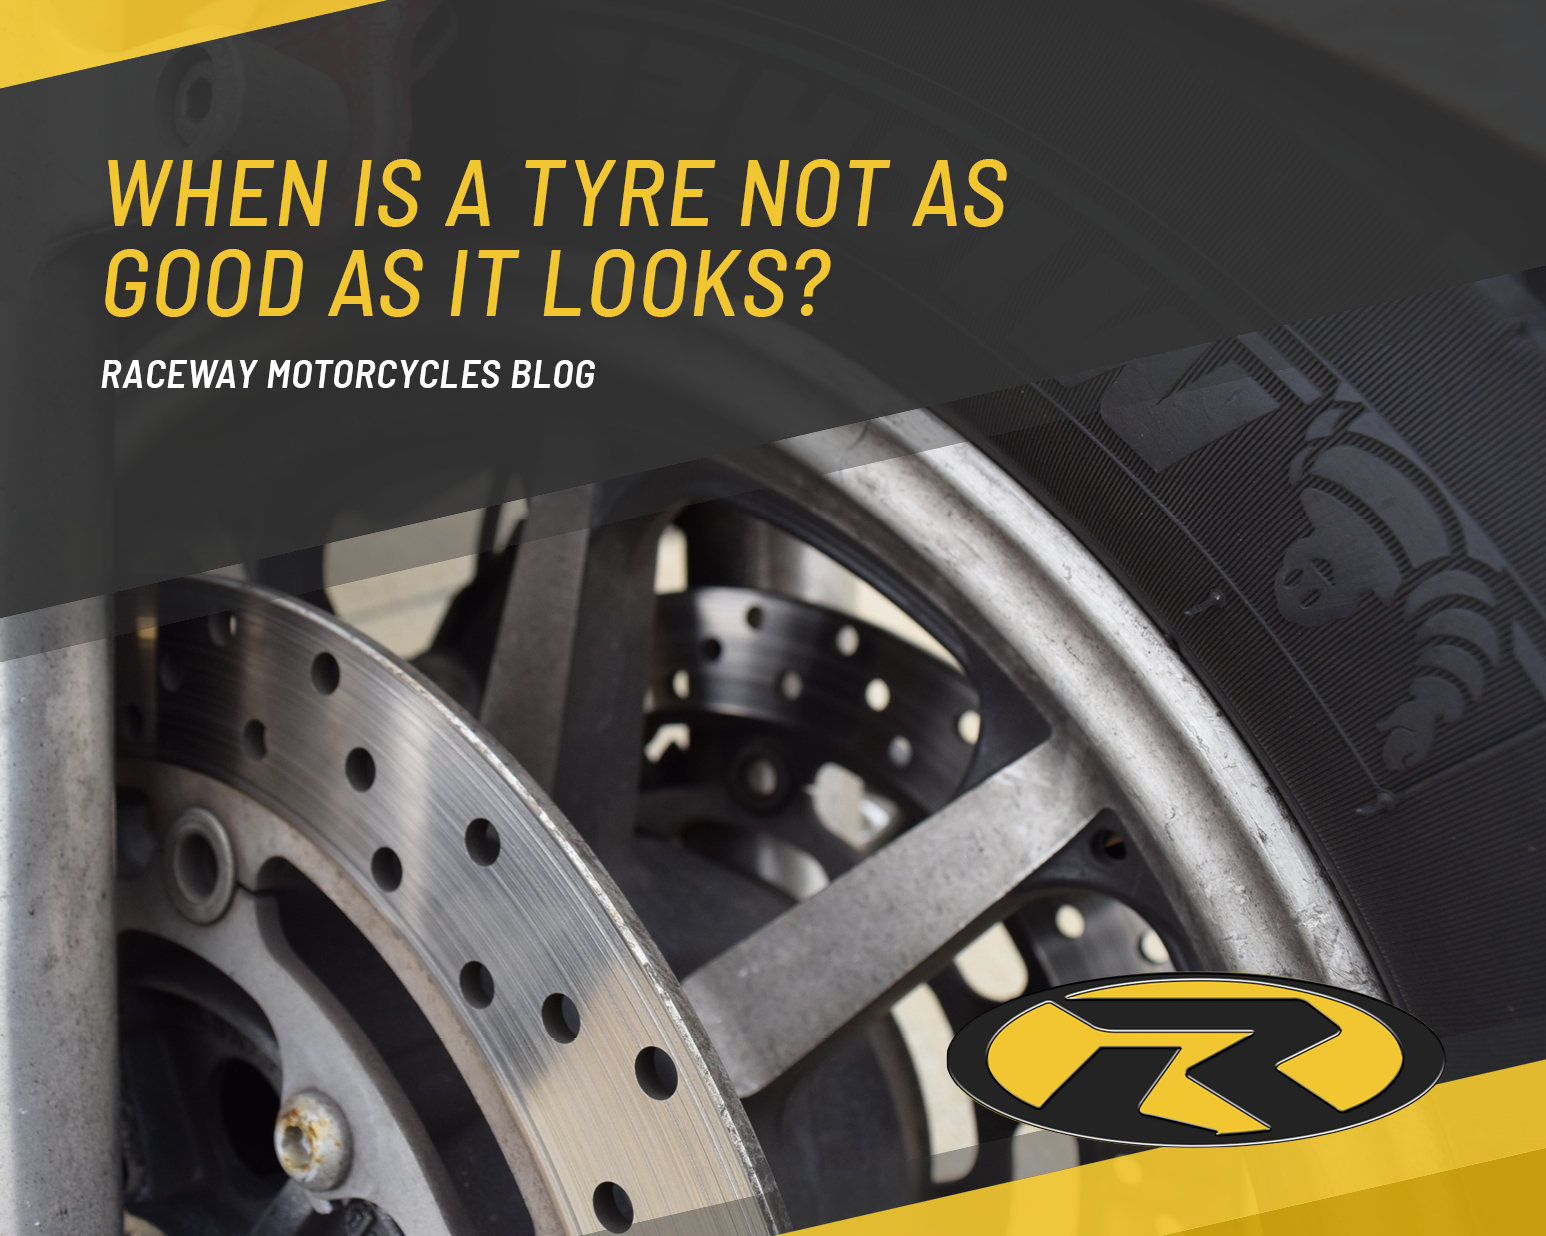 When is a tyre not as good as it looks?